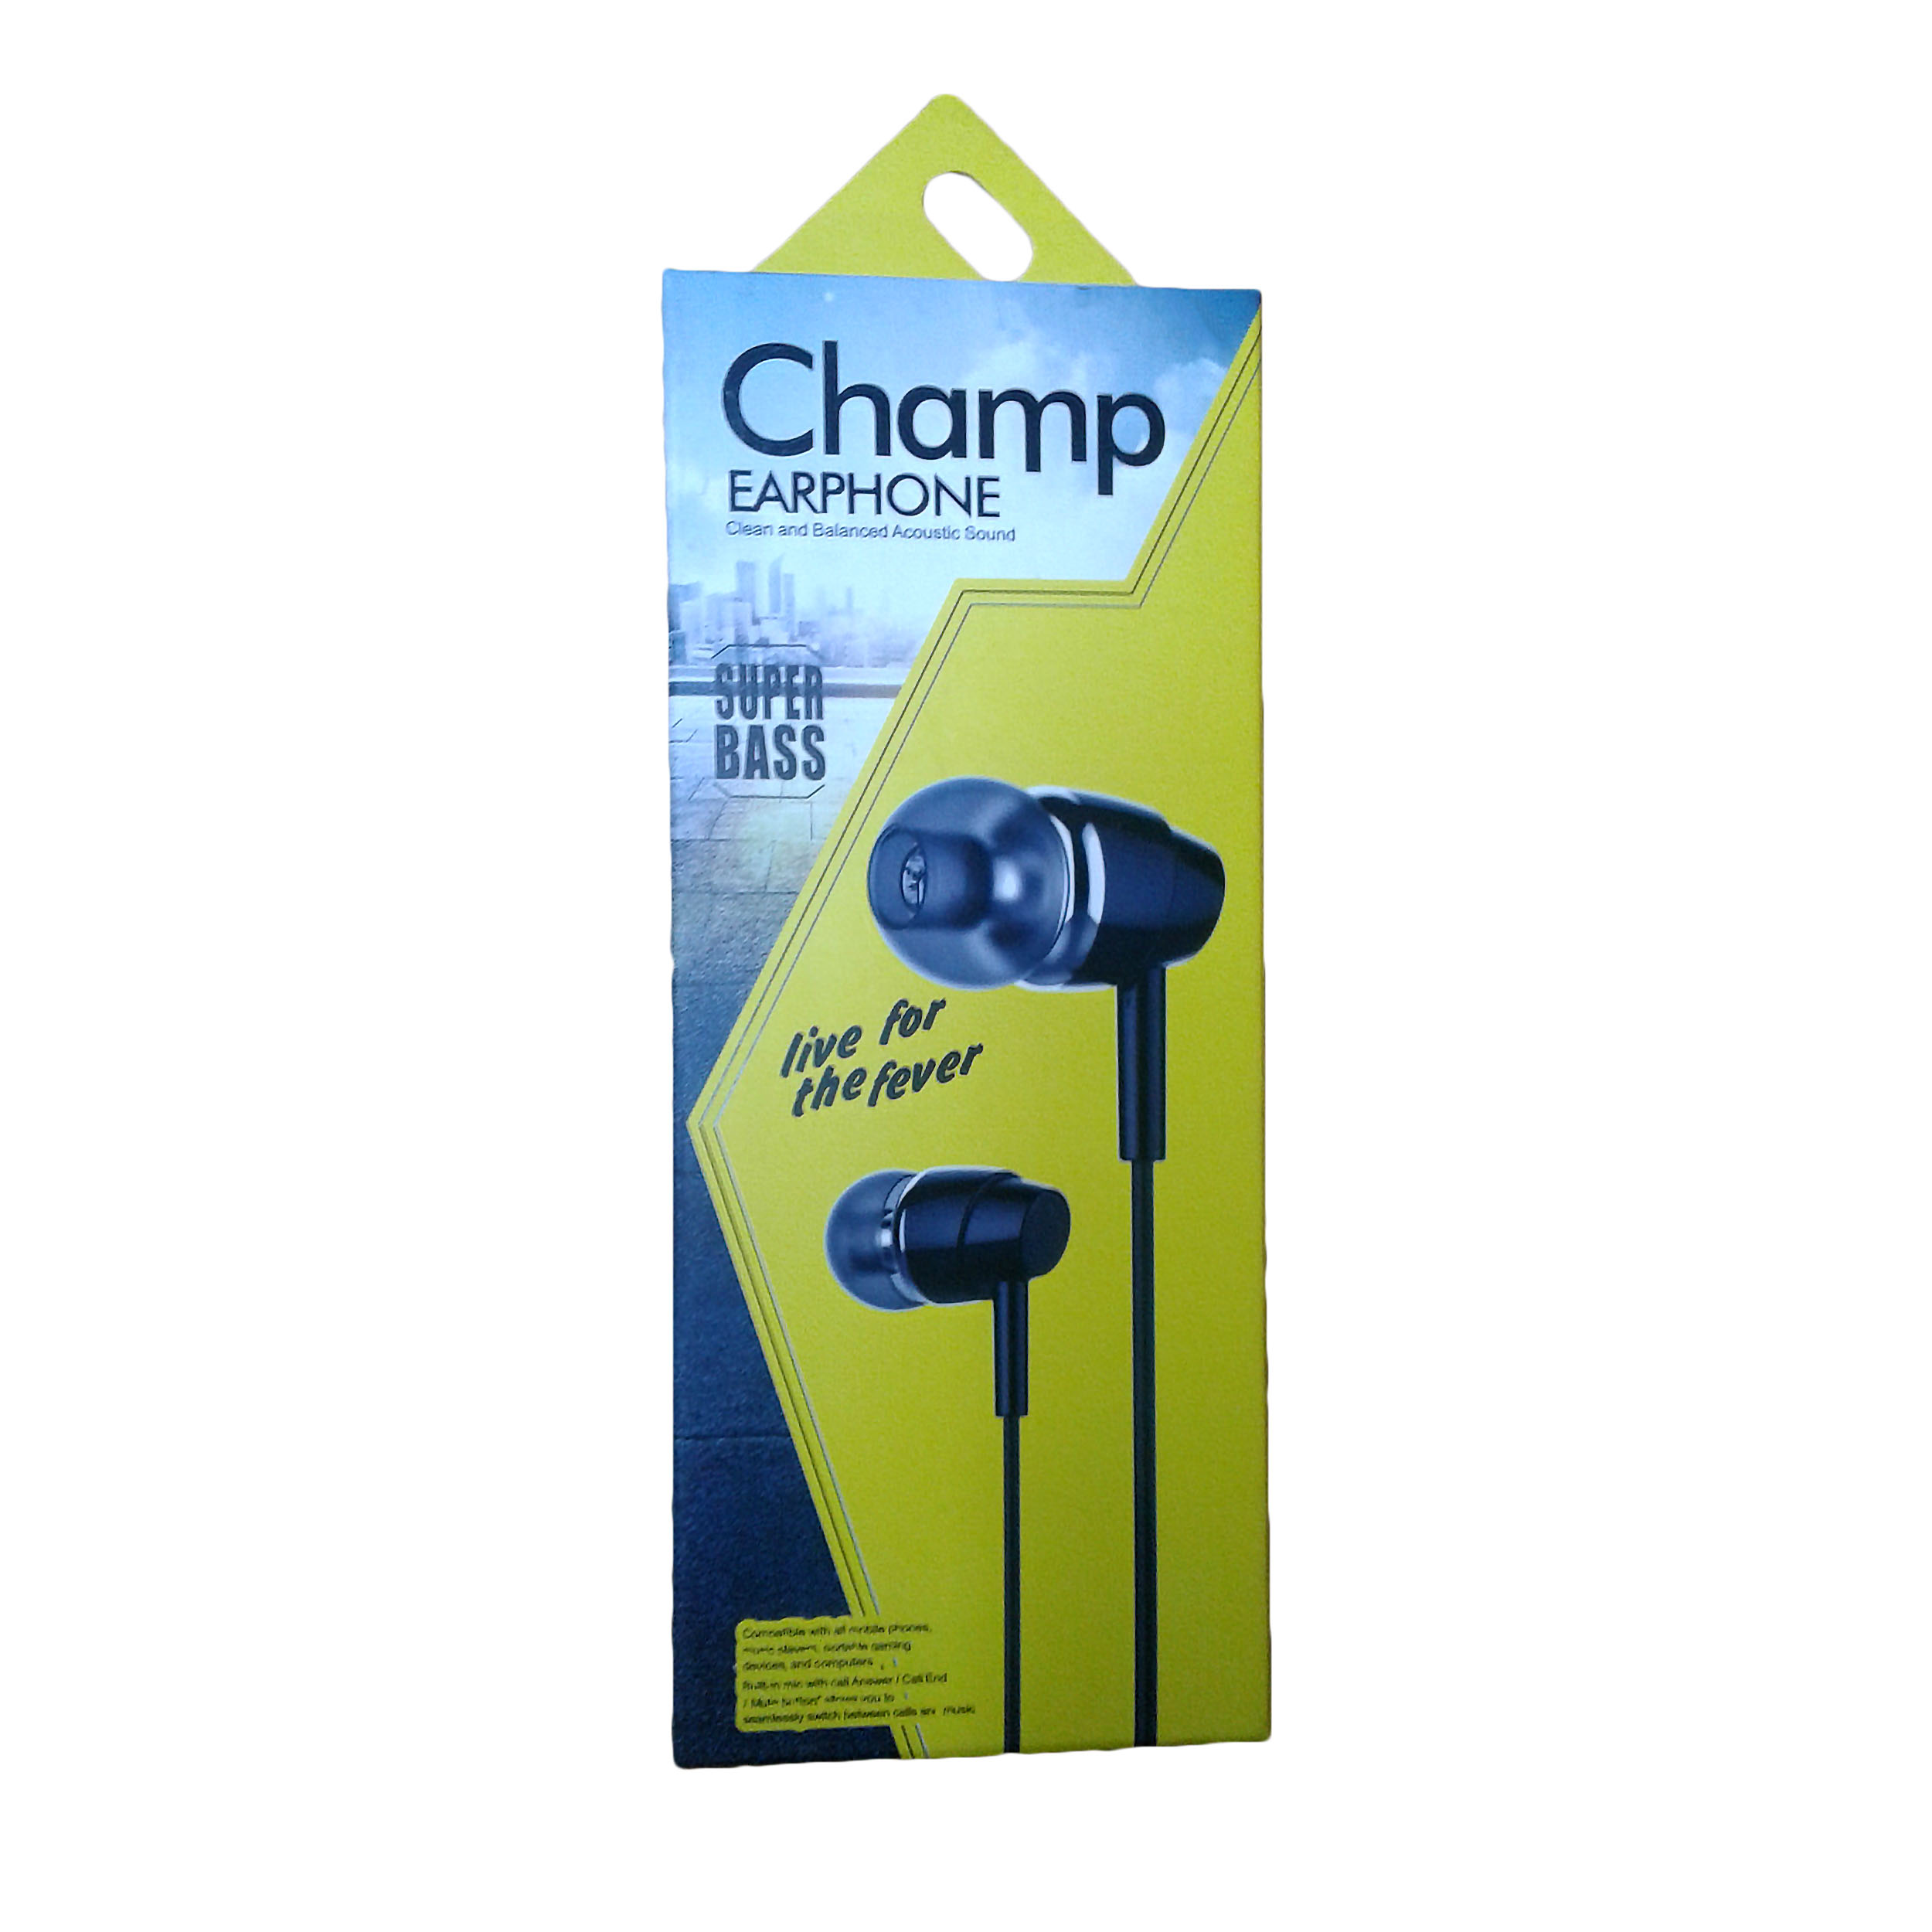 EARPHONE CHAMP FOR SMARTPHONE OR TAB WHITE ضغط ,Smartphones & Tab Headsets